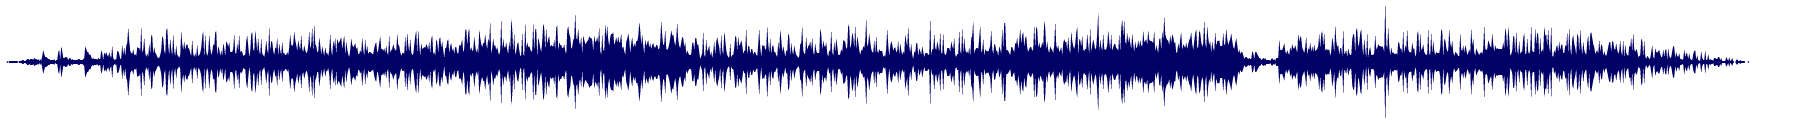 waveform of track #70303